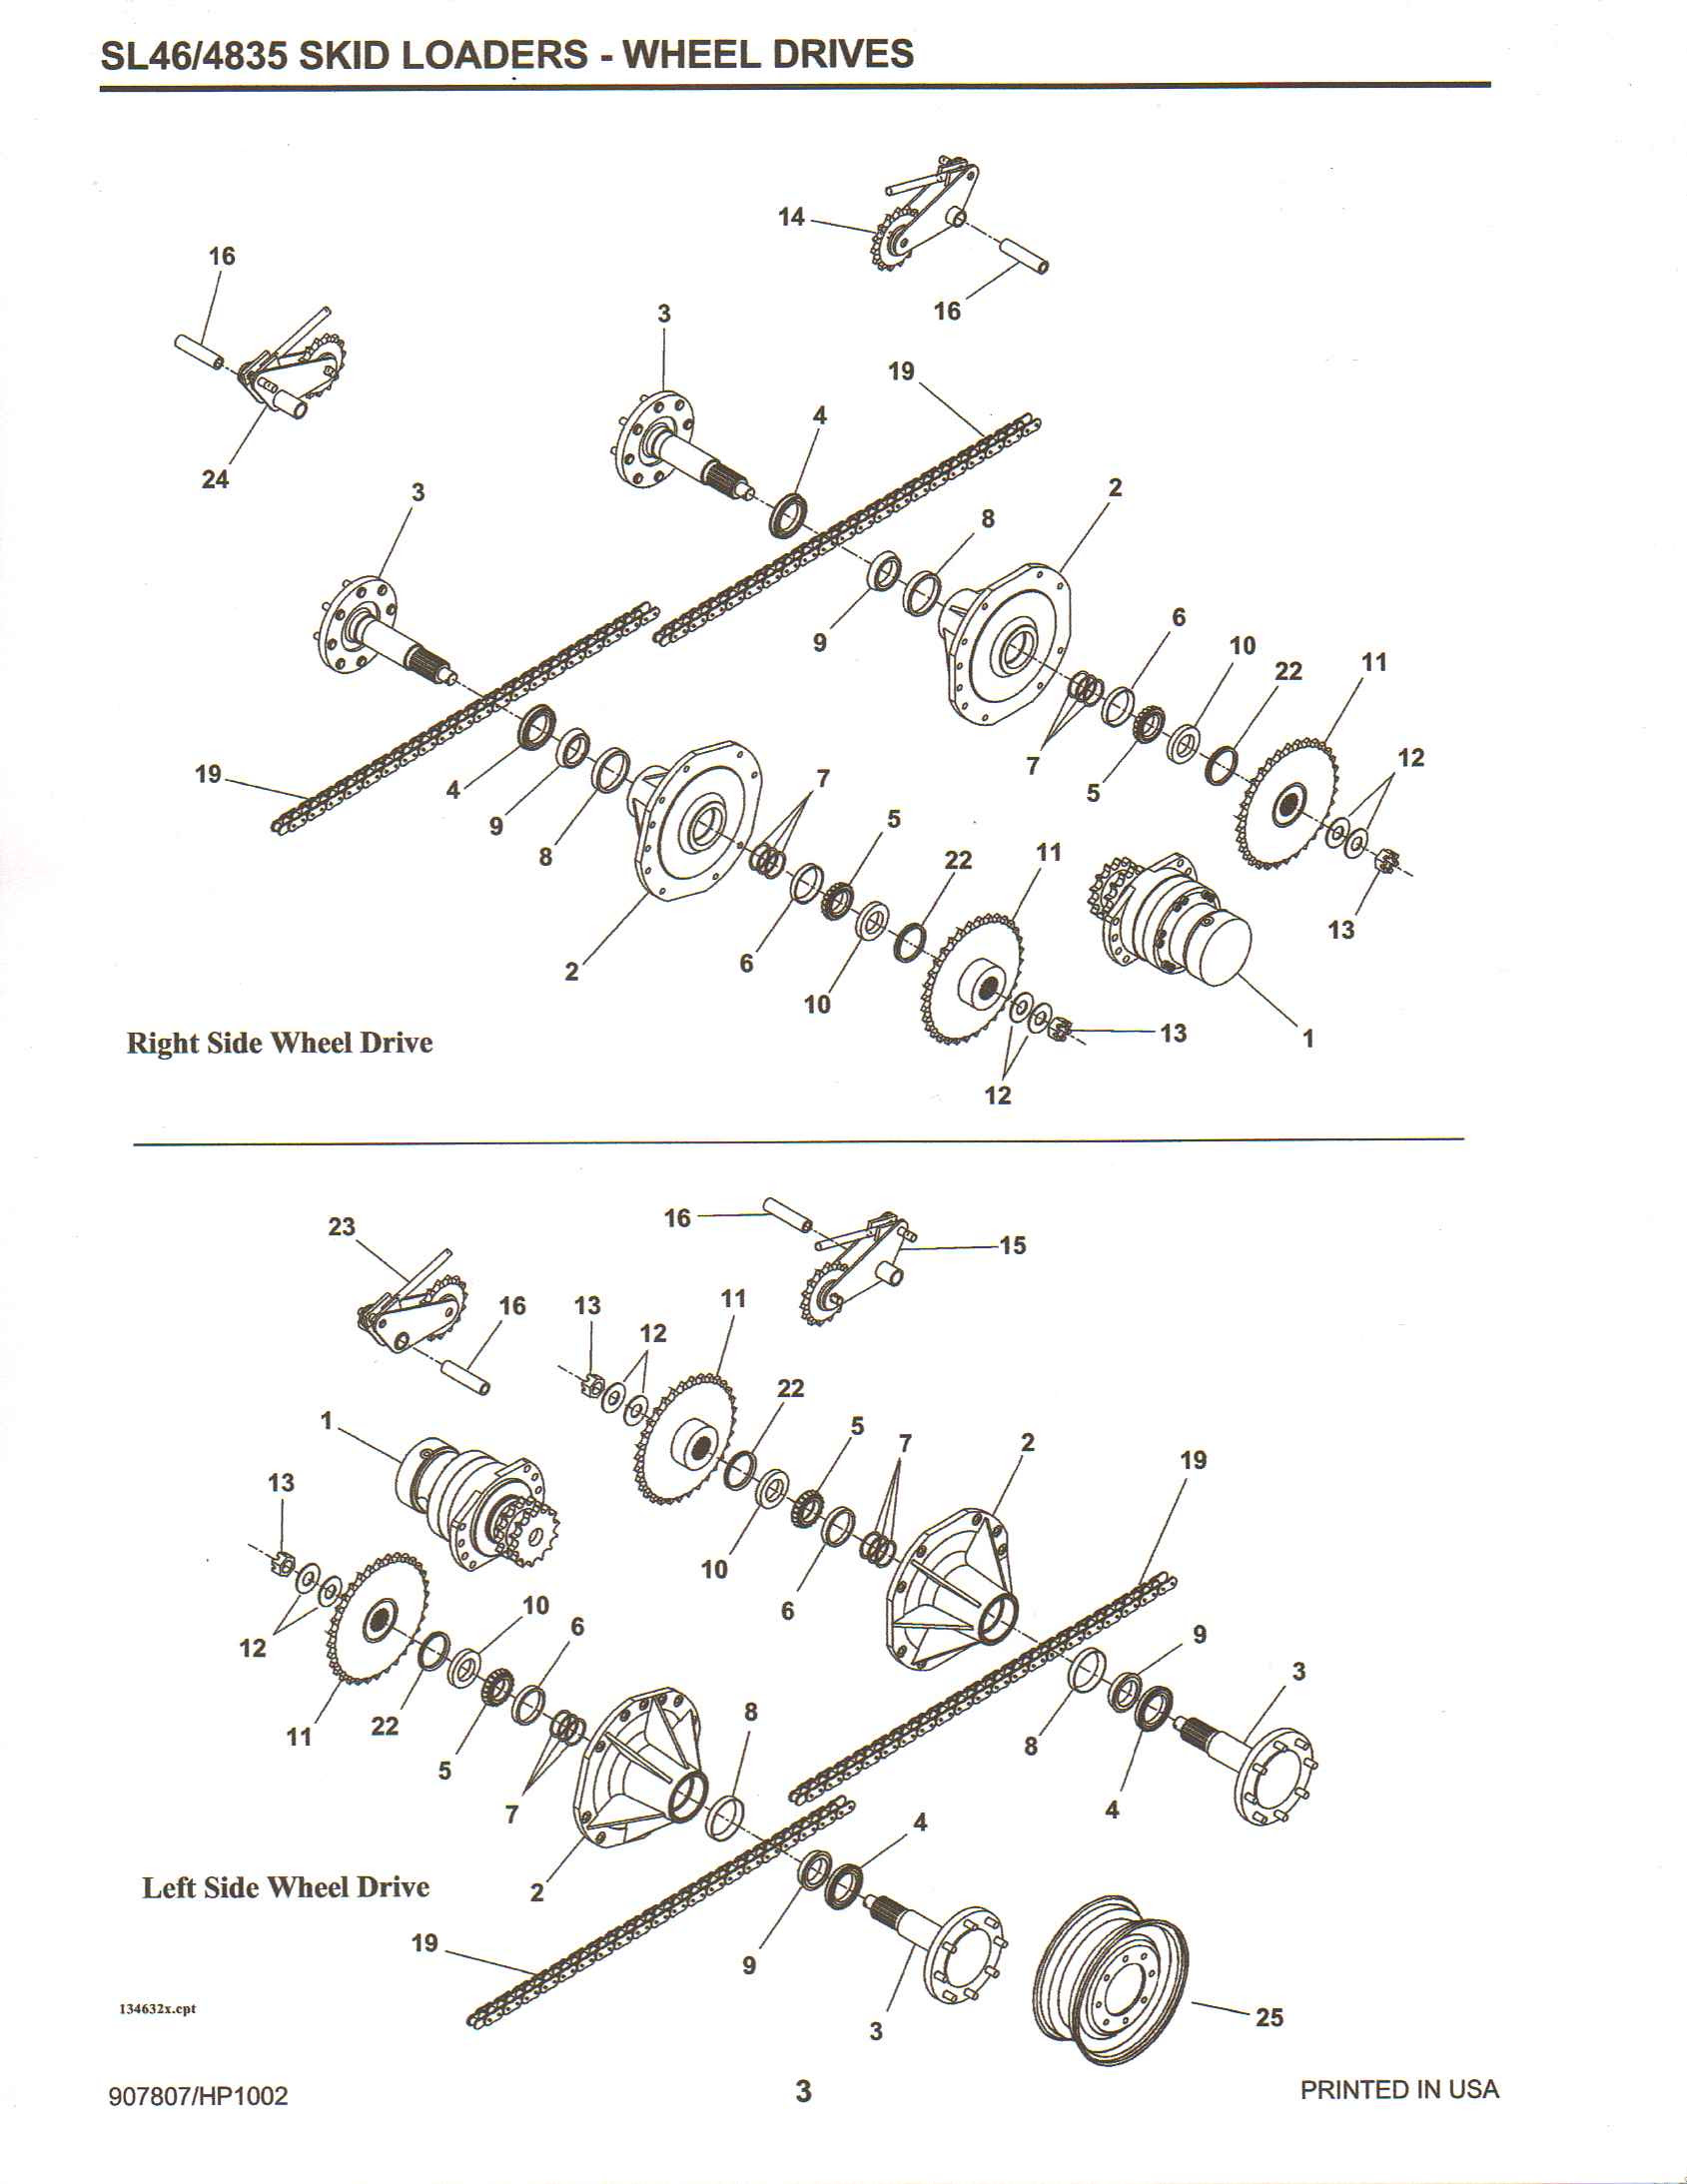 Wiring Diagram: 29 Gehl Skid Steer Parts Diagram